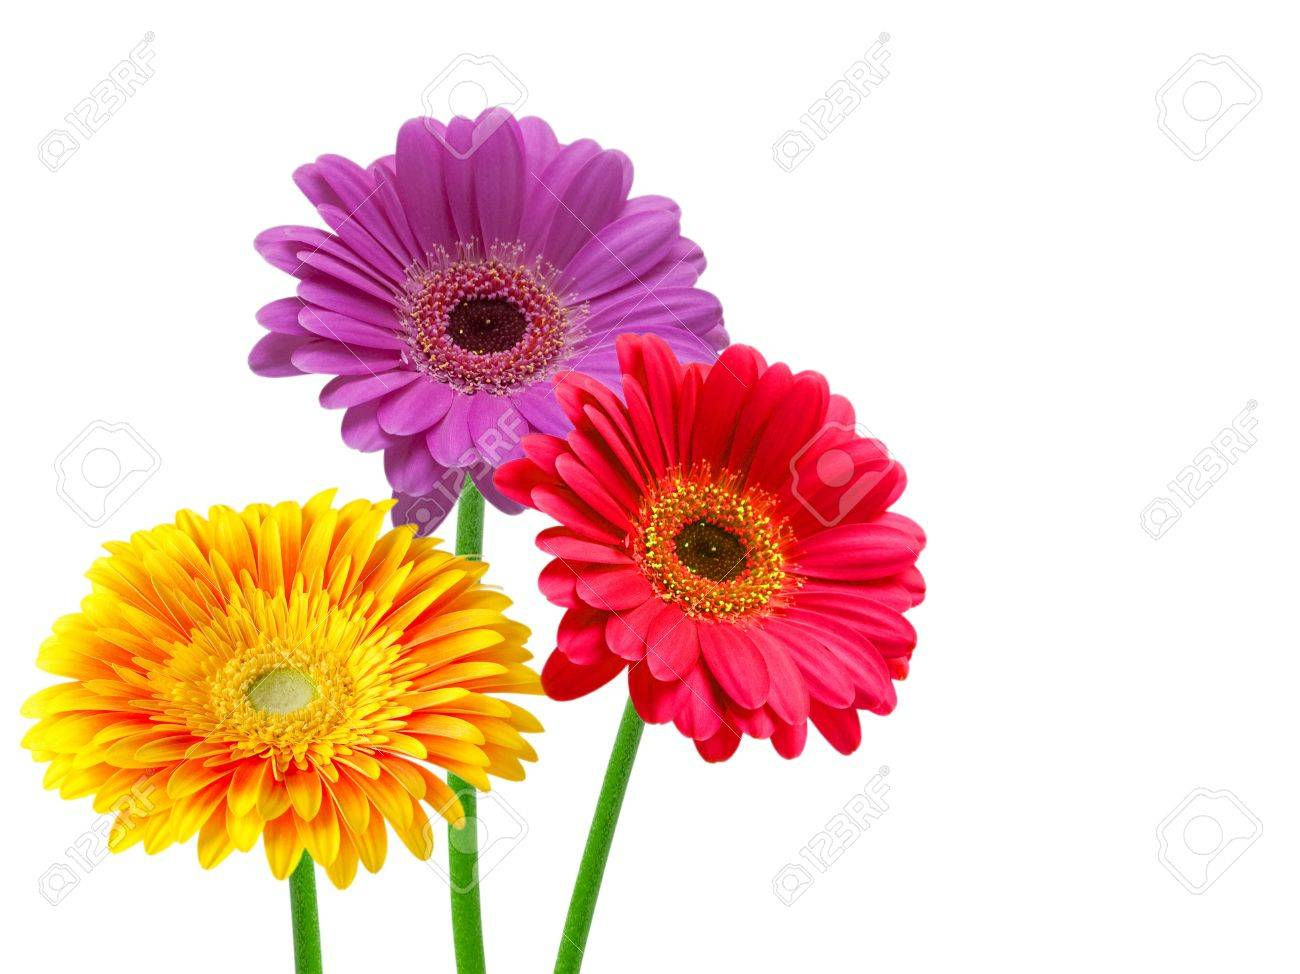 gerber flower isolated on white background Stock Photo - 11208531